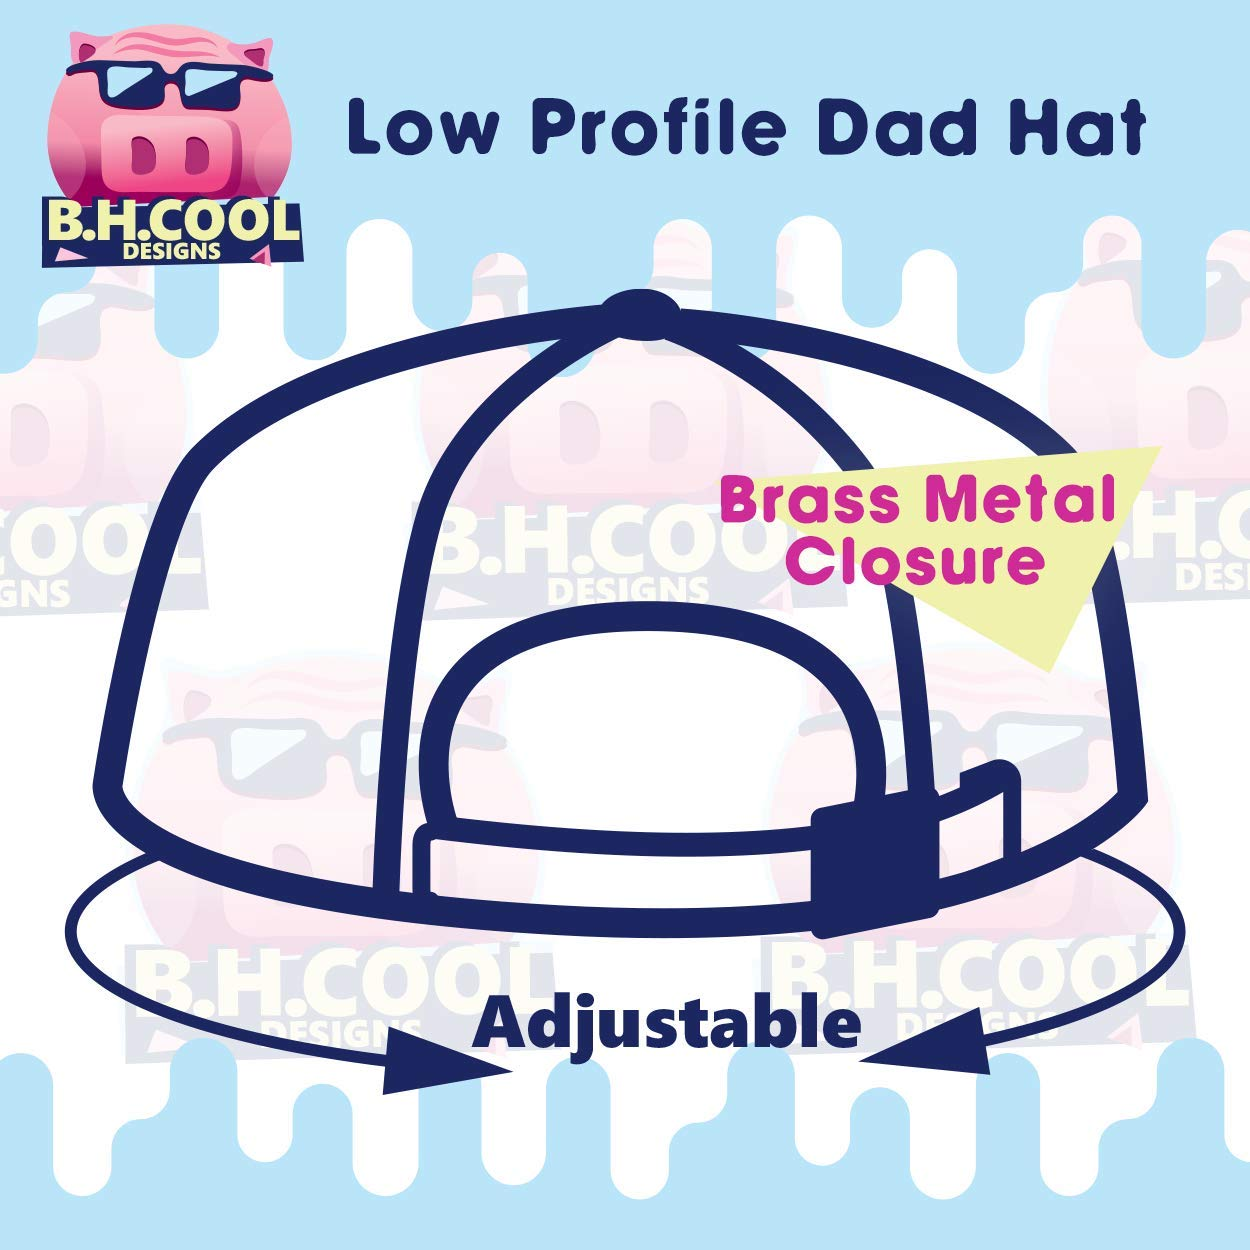 BH Cool Designs #Enema Comfortable Dad Hat Baseball Cap